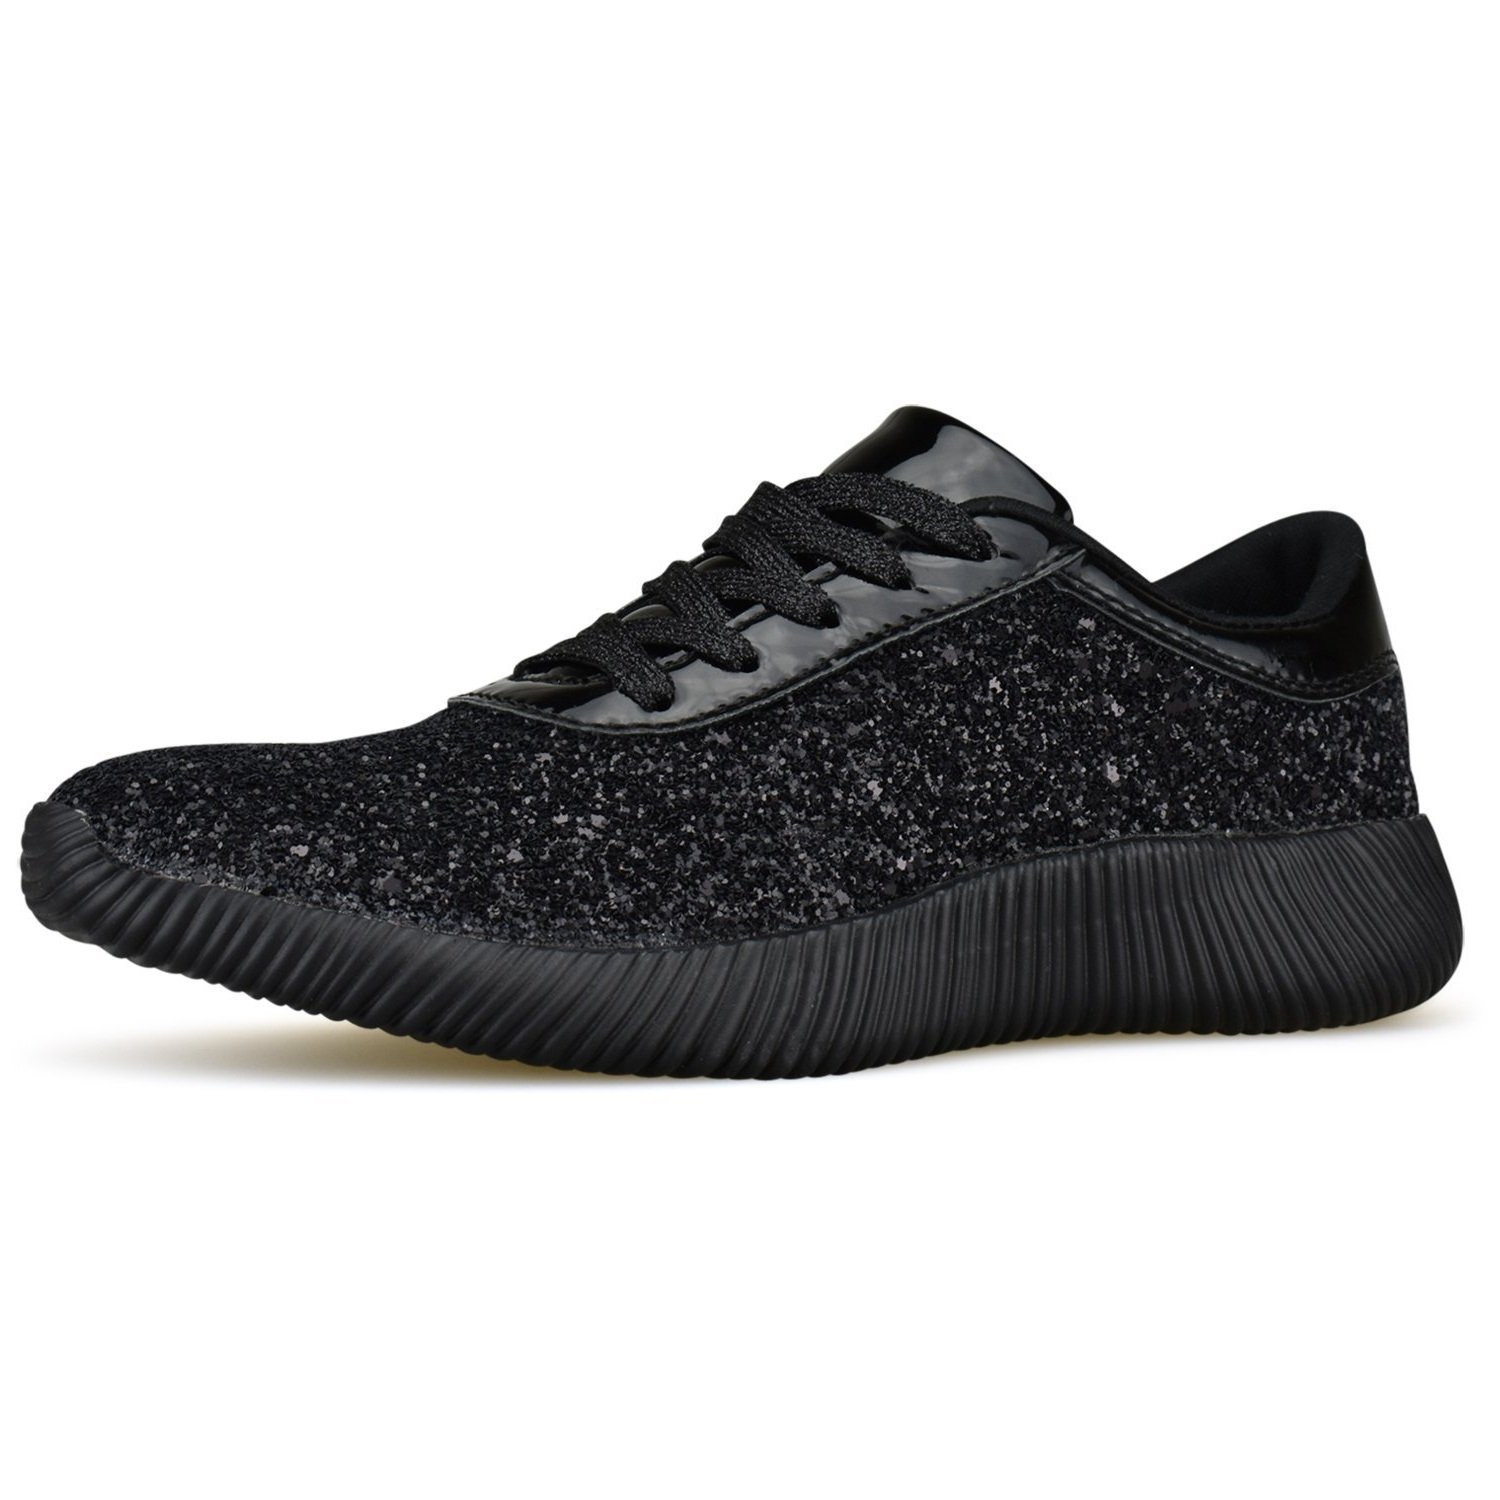 85810efa5edd Get Quotations · ShoBeautiful Womens Wedge Platform Fashion Sneaker Glitter  Metallic Lace Up Sparkle Slip On Street Casual Running